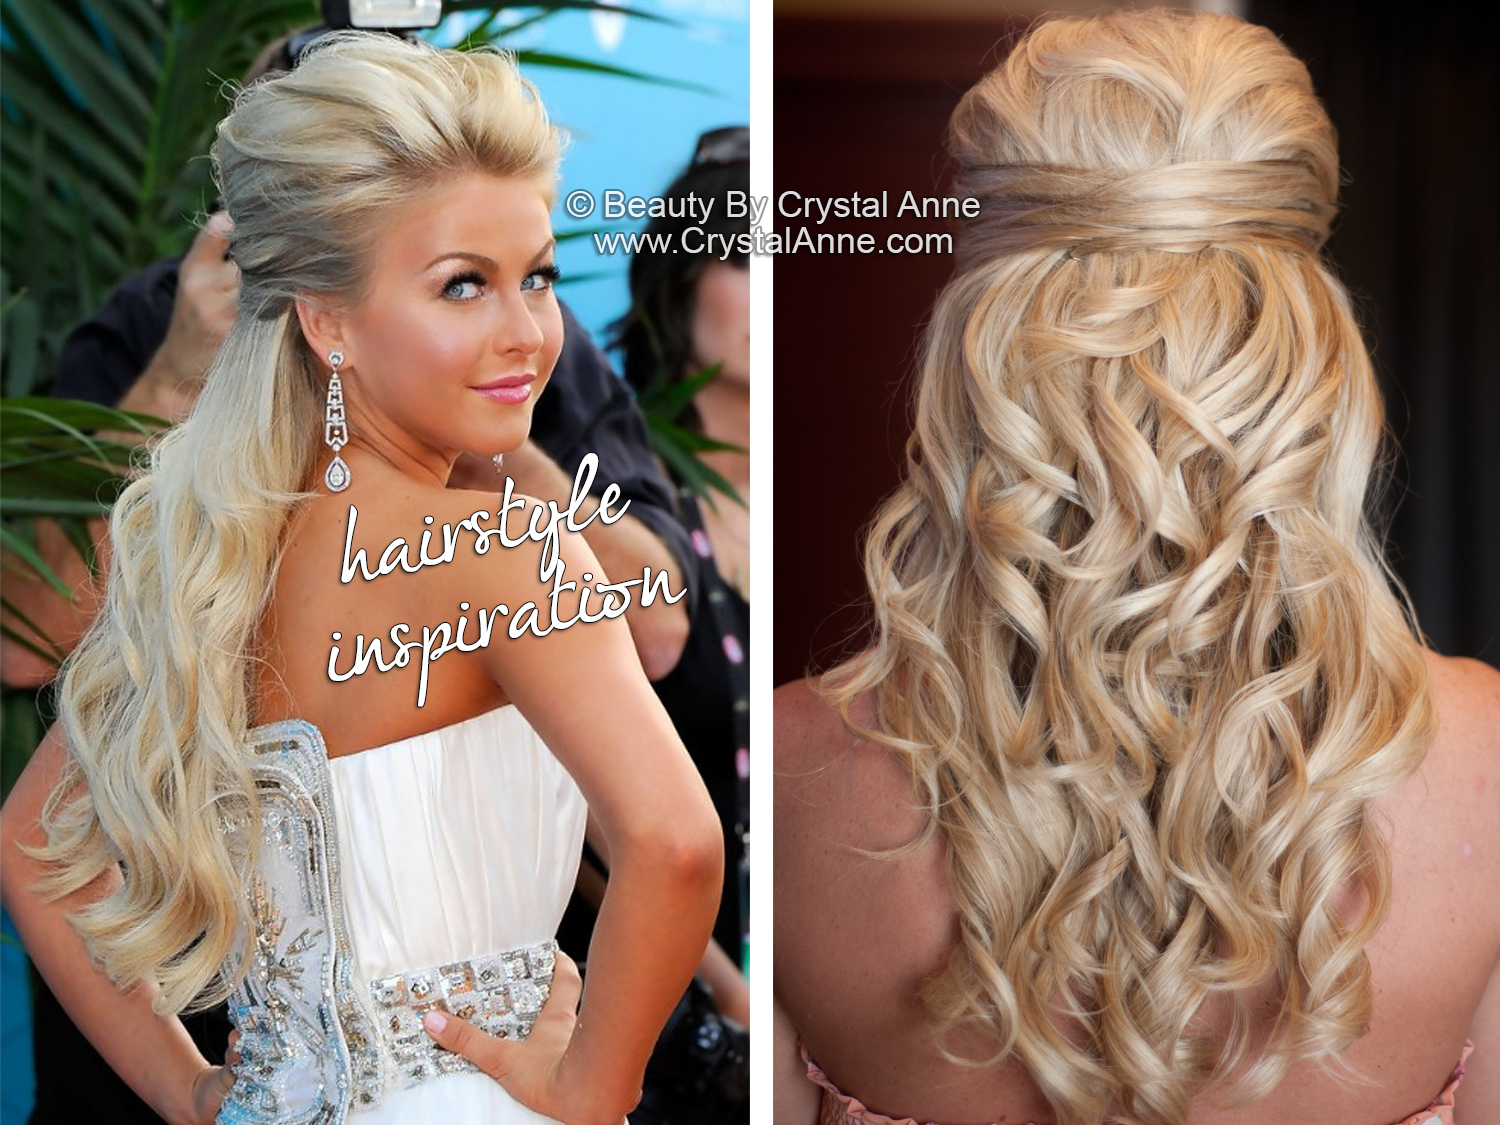 julianne hough inspired half up bridal hairstyle - houston hair